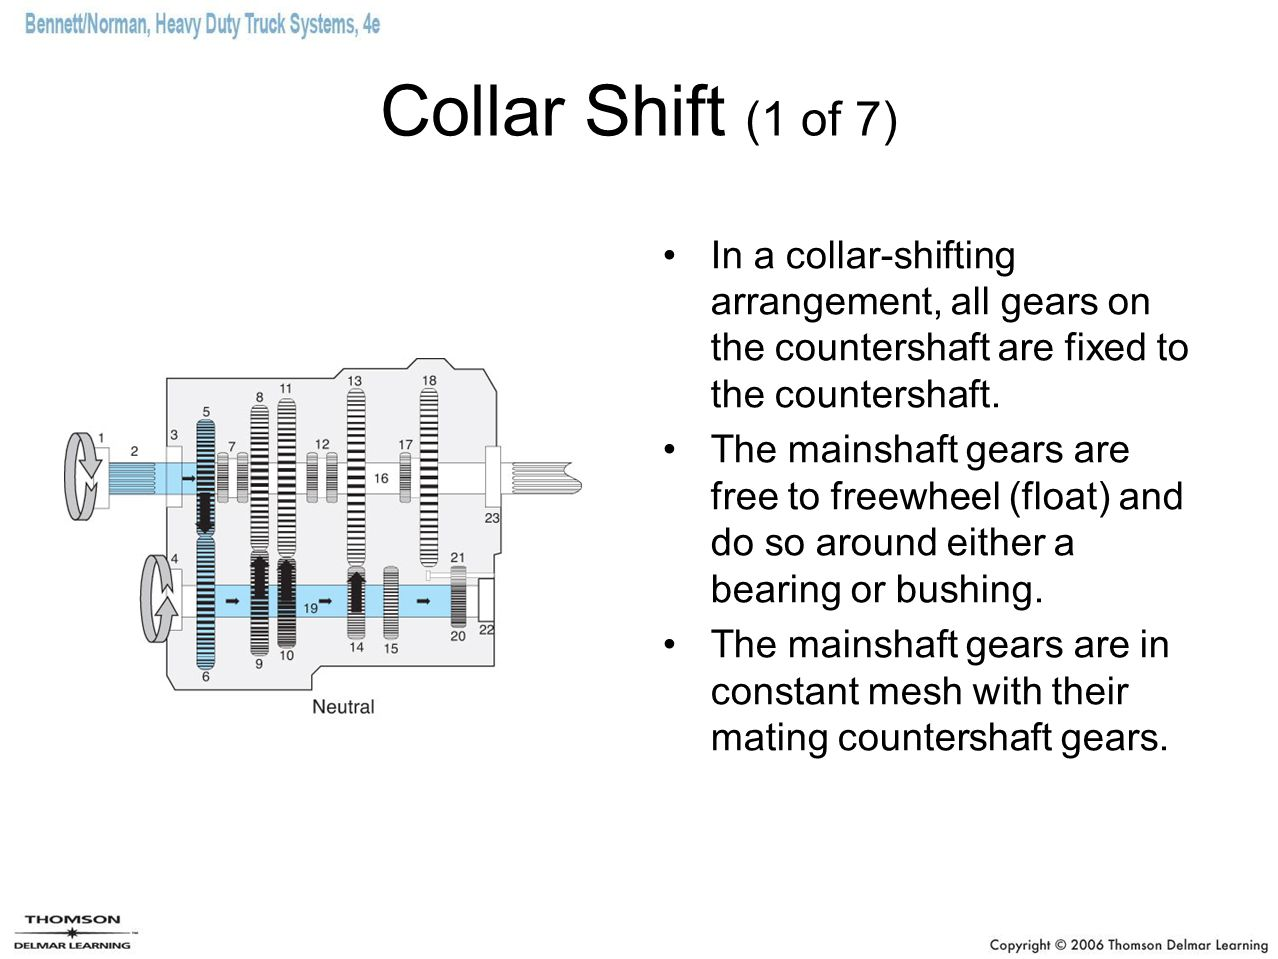 Collar Shift (1 of 7) In a collar-shifting arrangement, all gears on the countershaft are fixed to the countershaft.